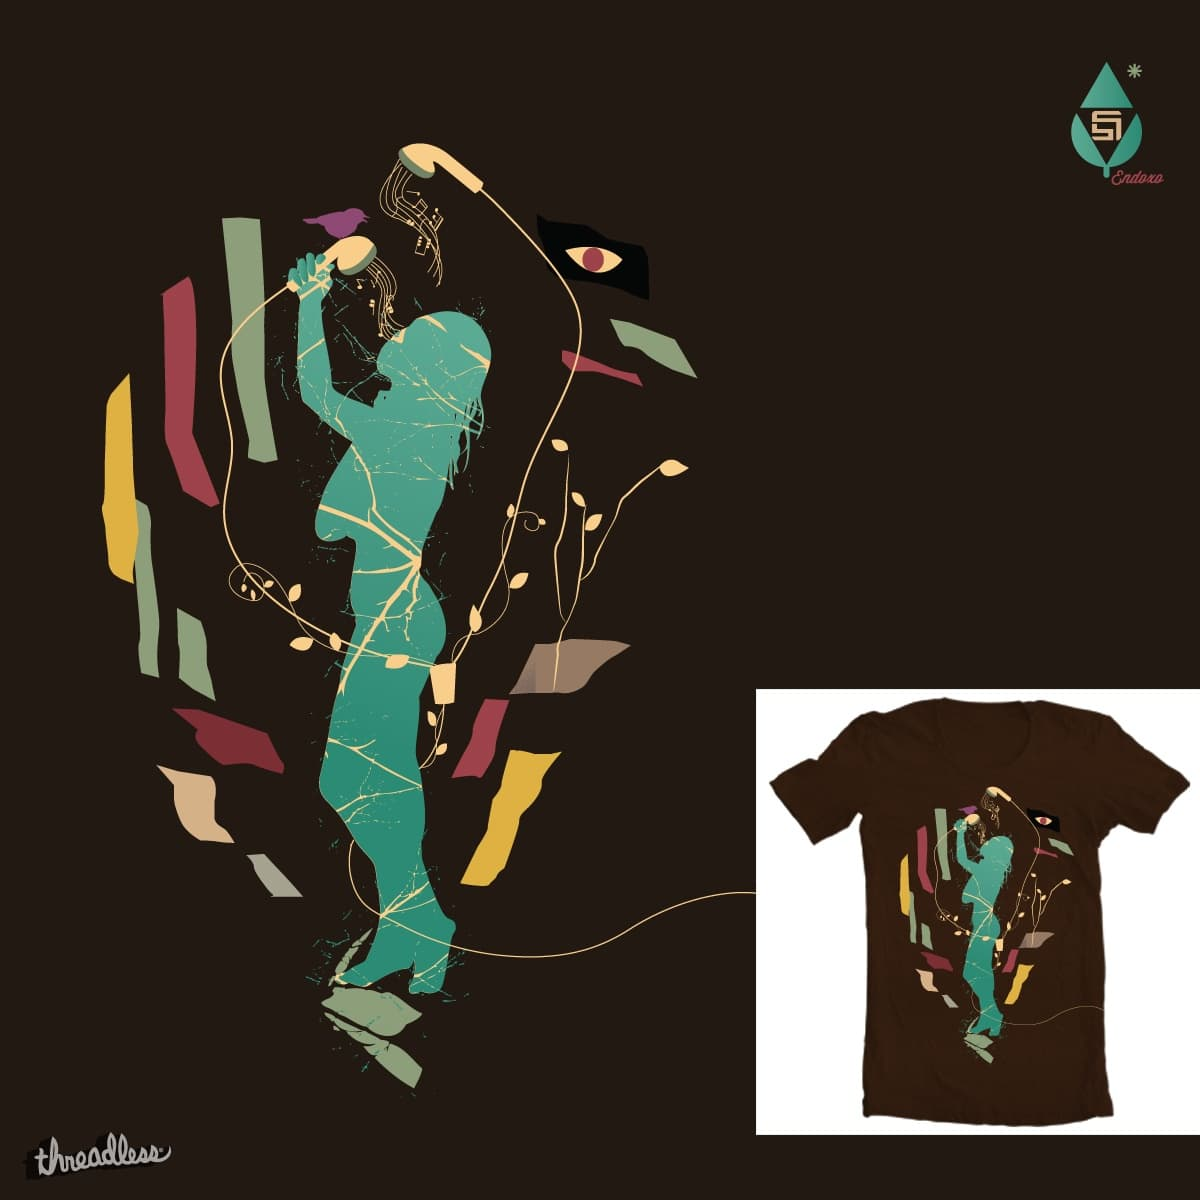 Bathing by mucro on Threadless